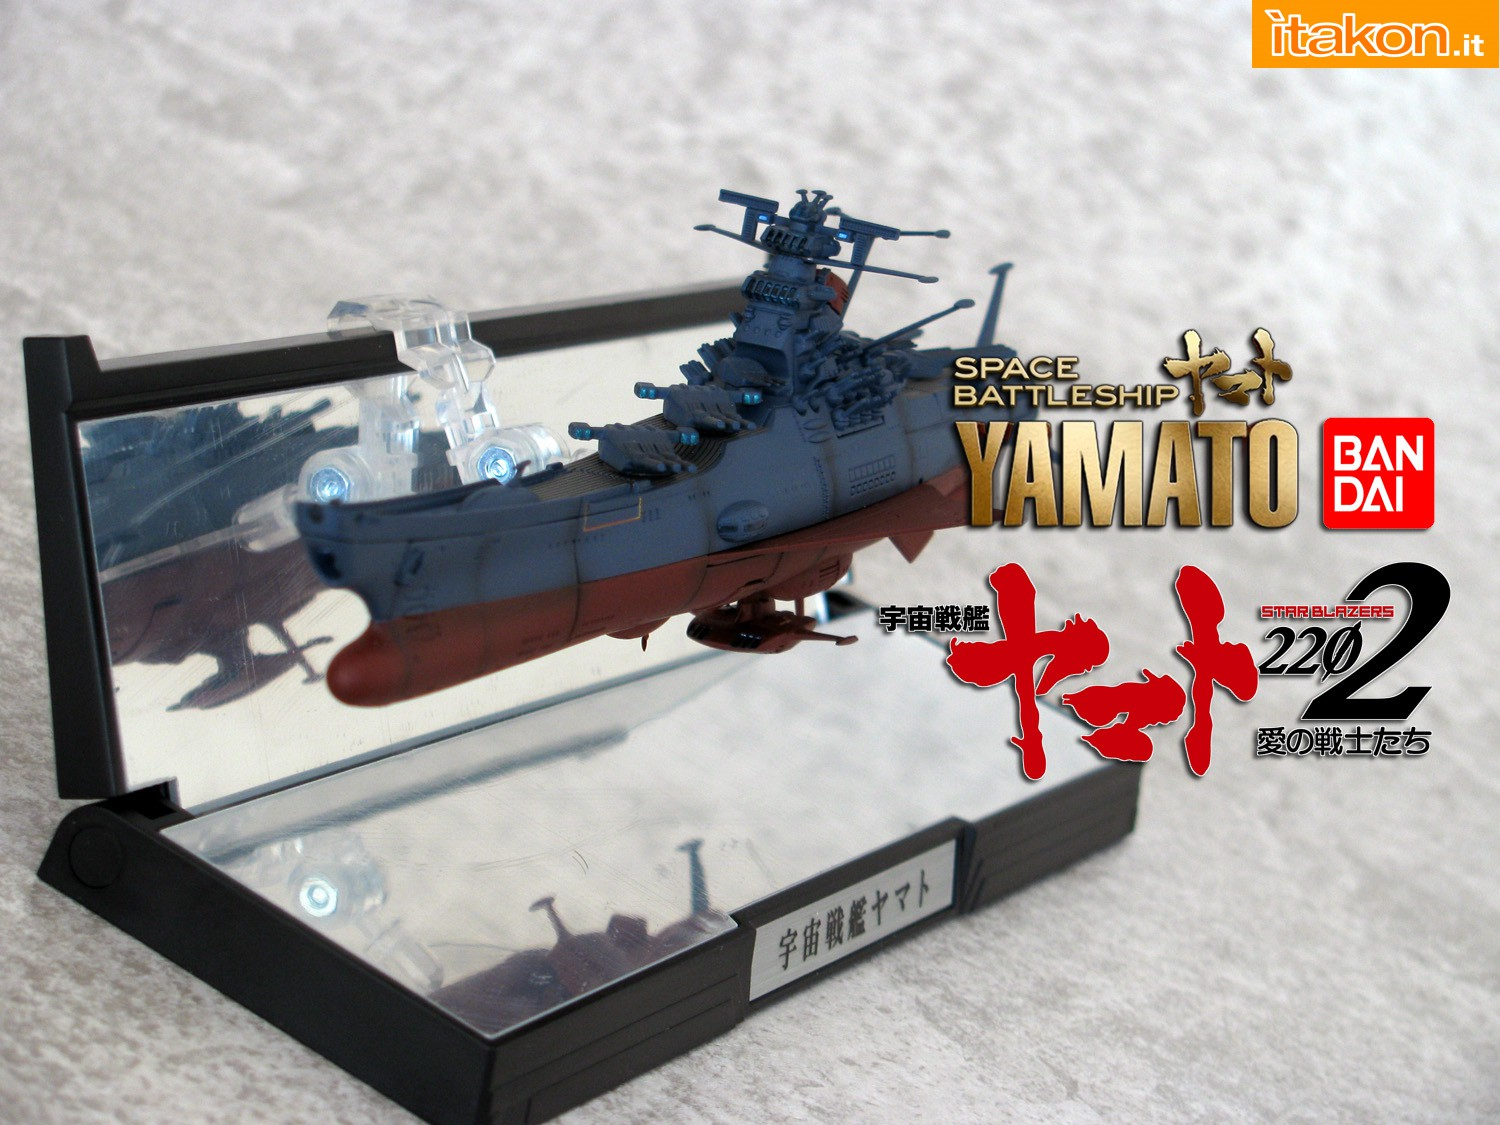 Link a 000 Space Battleship Yamato Bandai recensione